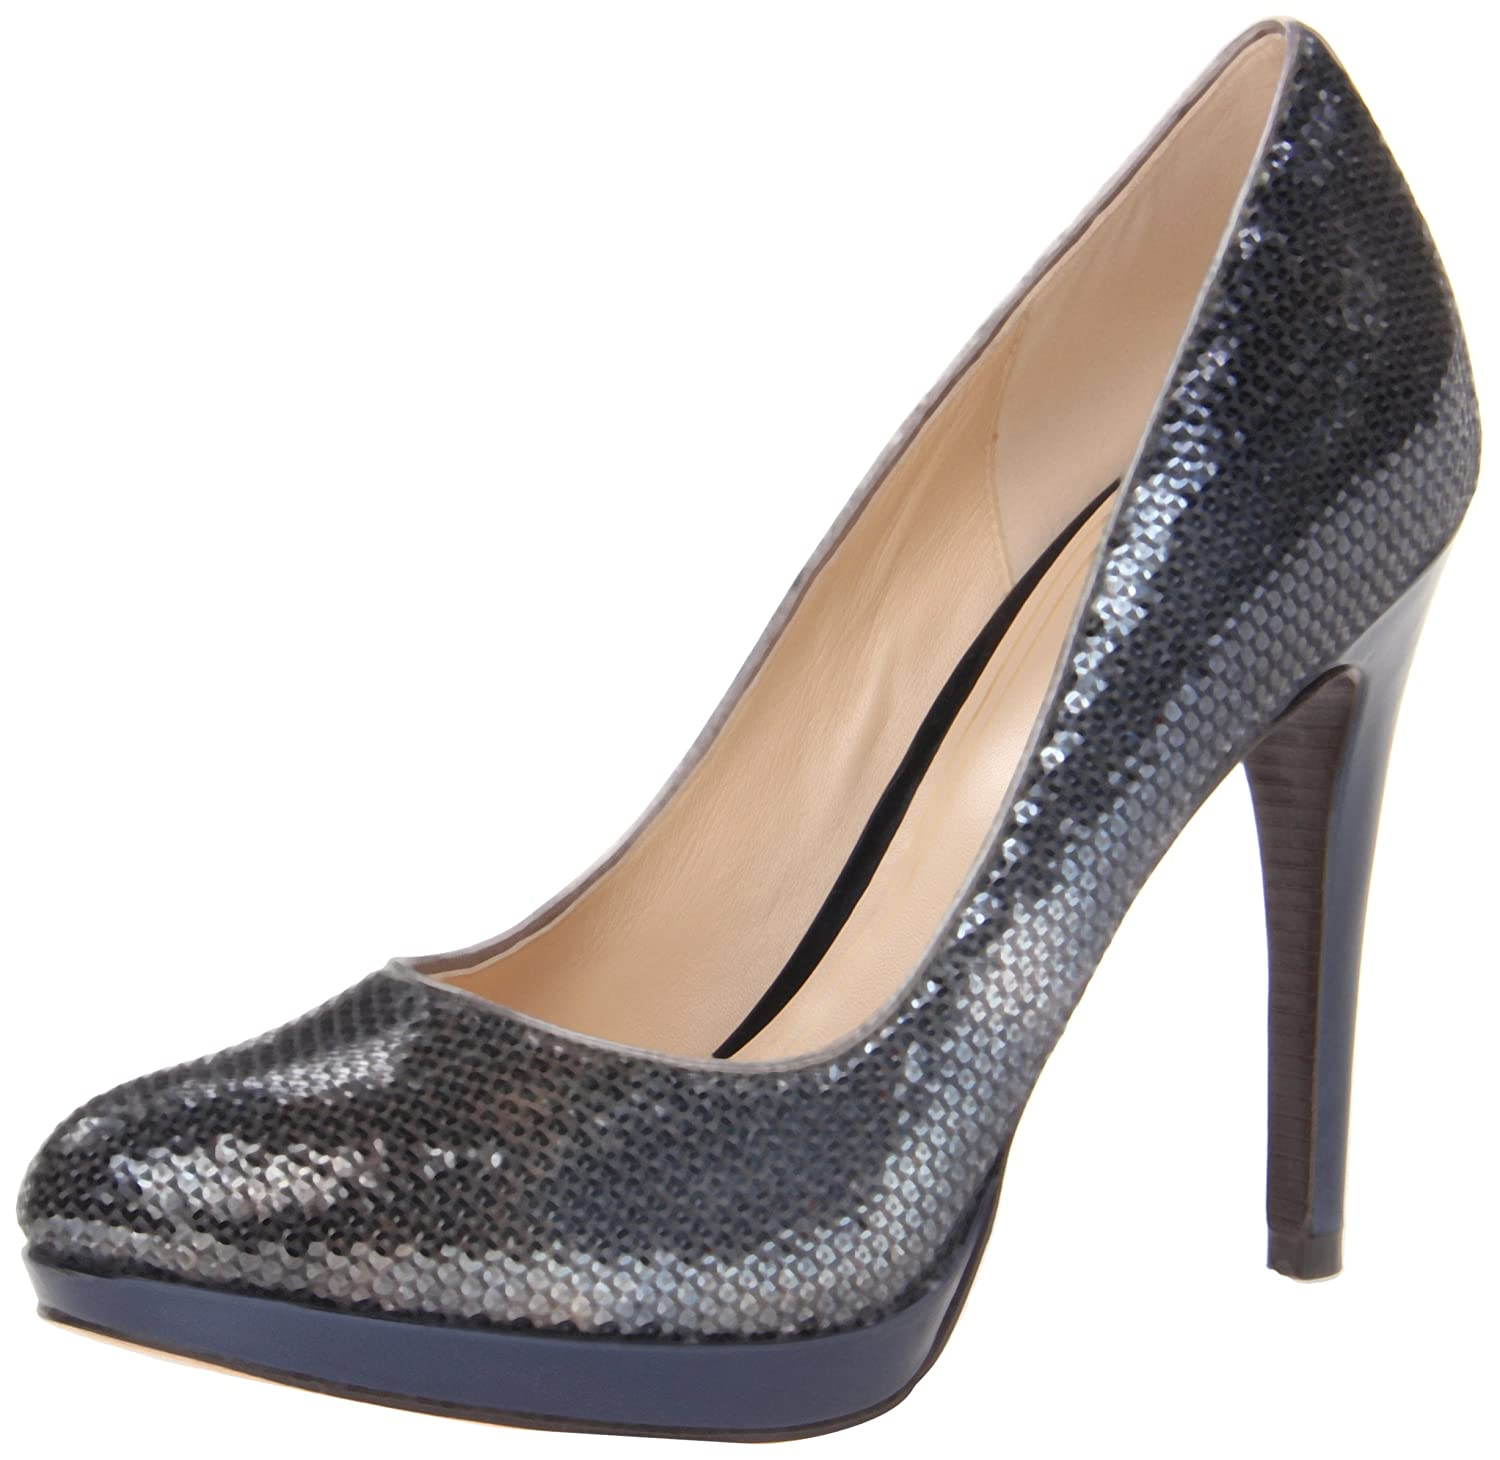 a2eaa741afed Cole Haan Women s Chelsea Pump